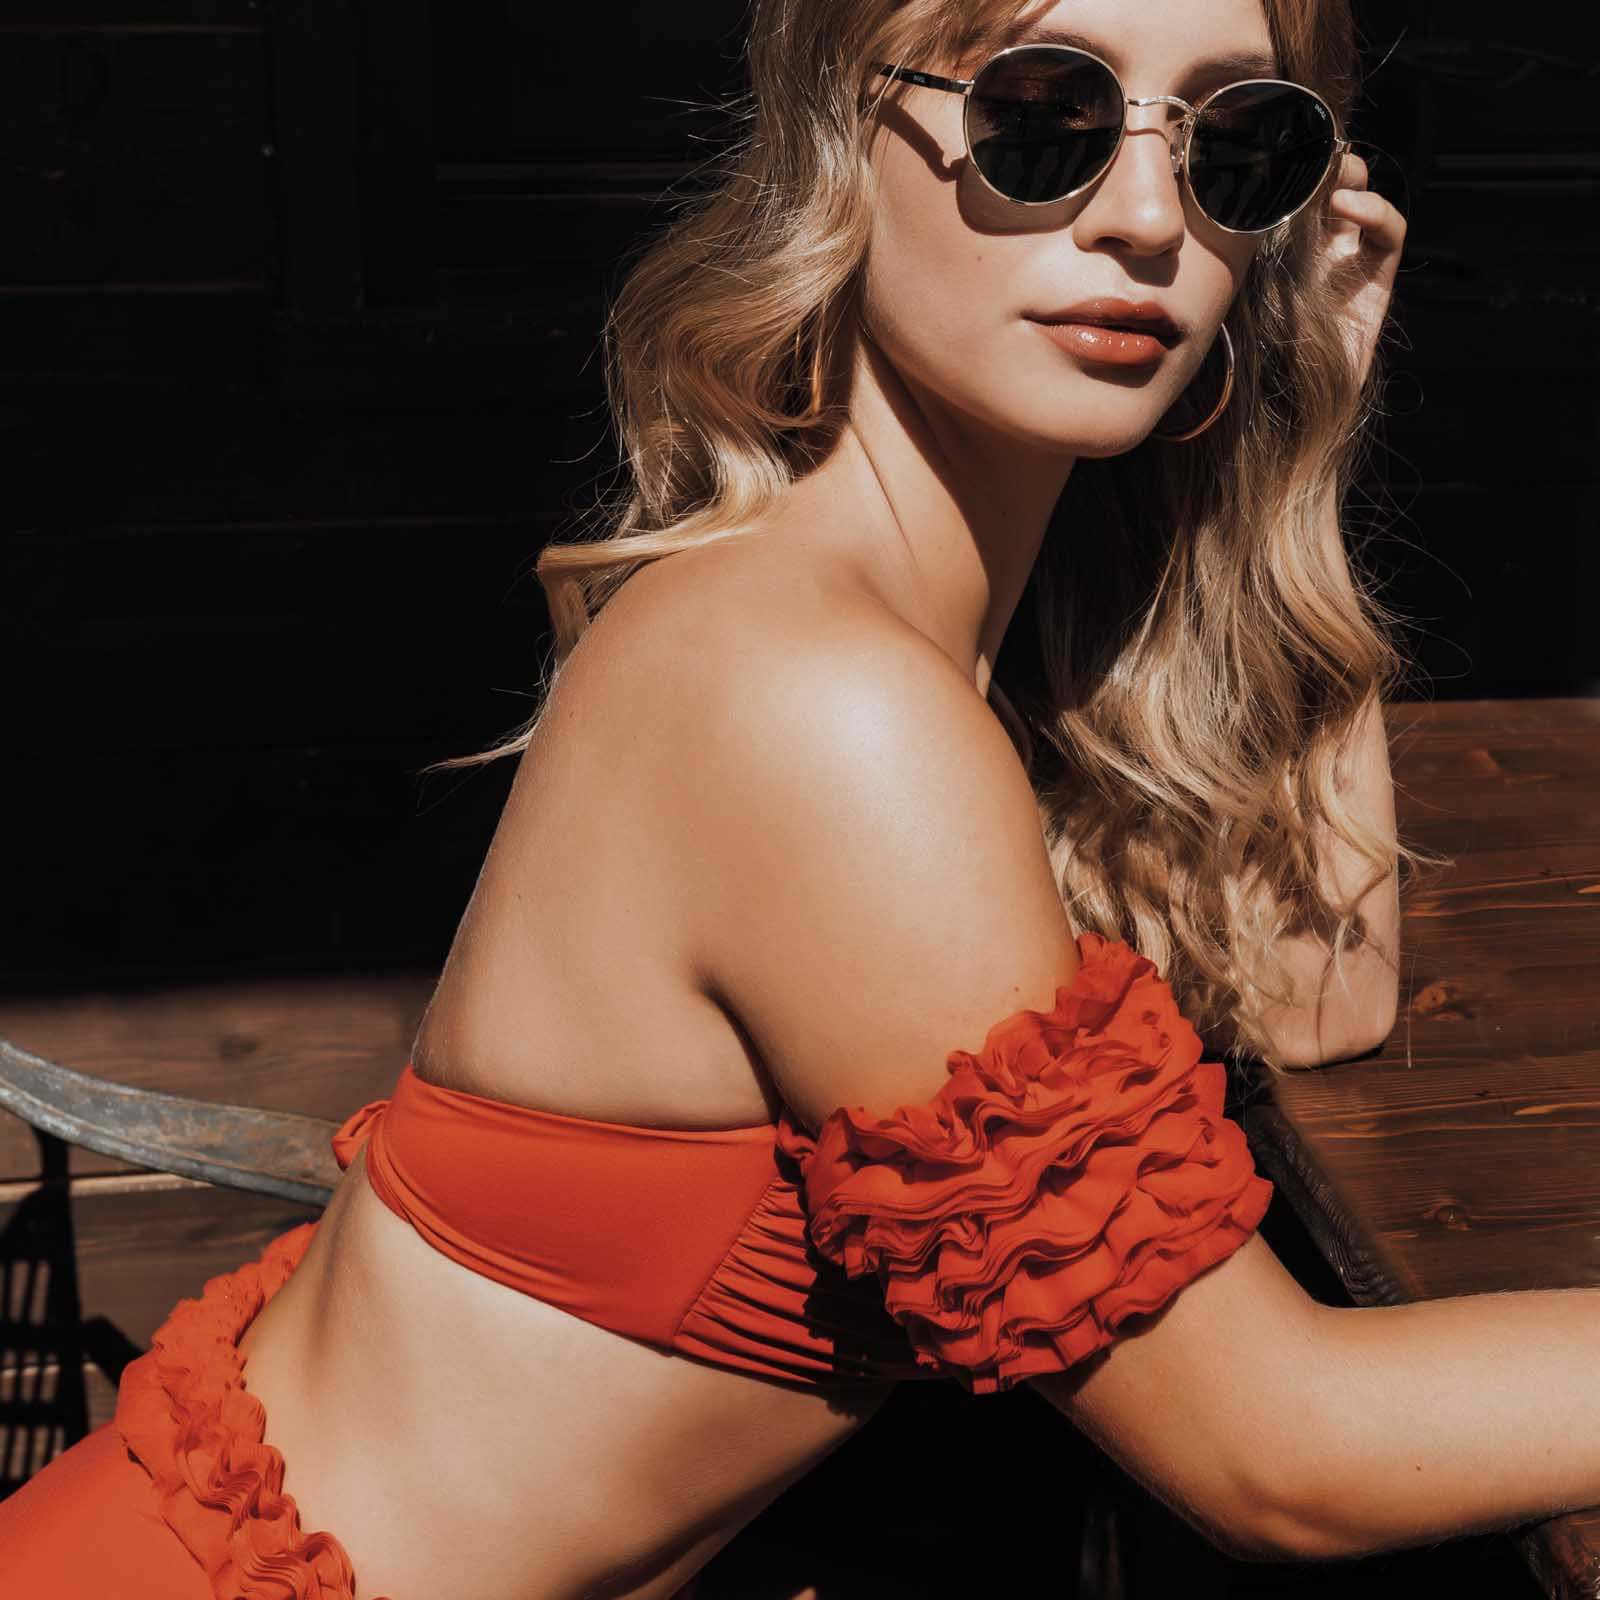 red bikini rosso triangolo kinda 3d swimwear tulle ruffles swimsuits 2020 bikini with flowers swimwear party bikini rosso a fascia costume due pezzi rosso red swimsuit red one piece ruffle swimsuit ruffle bikini